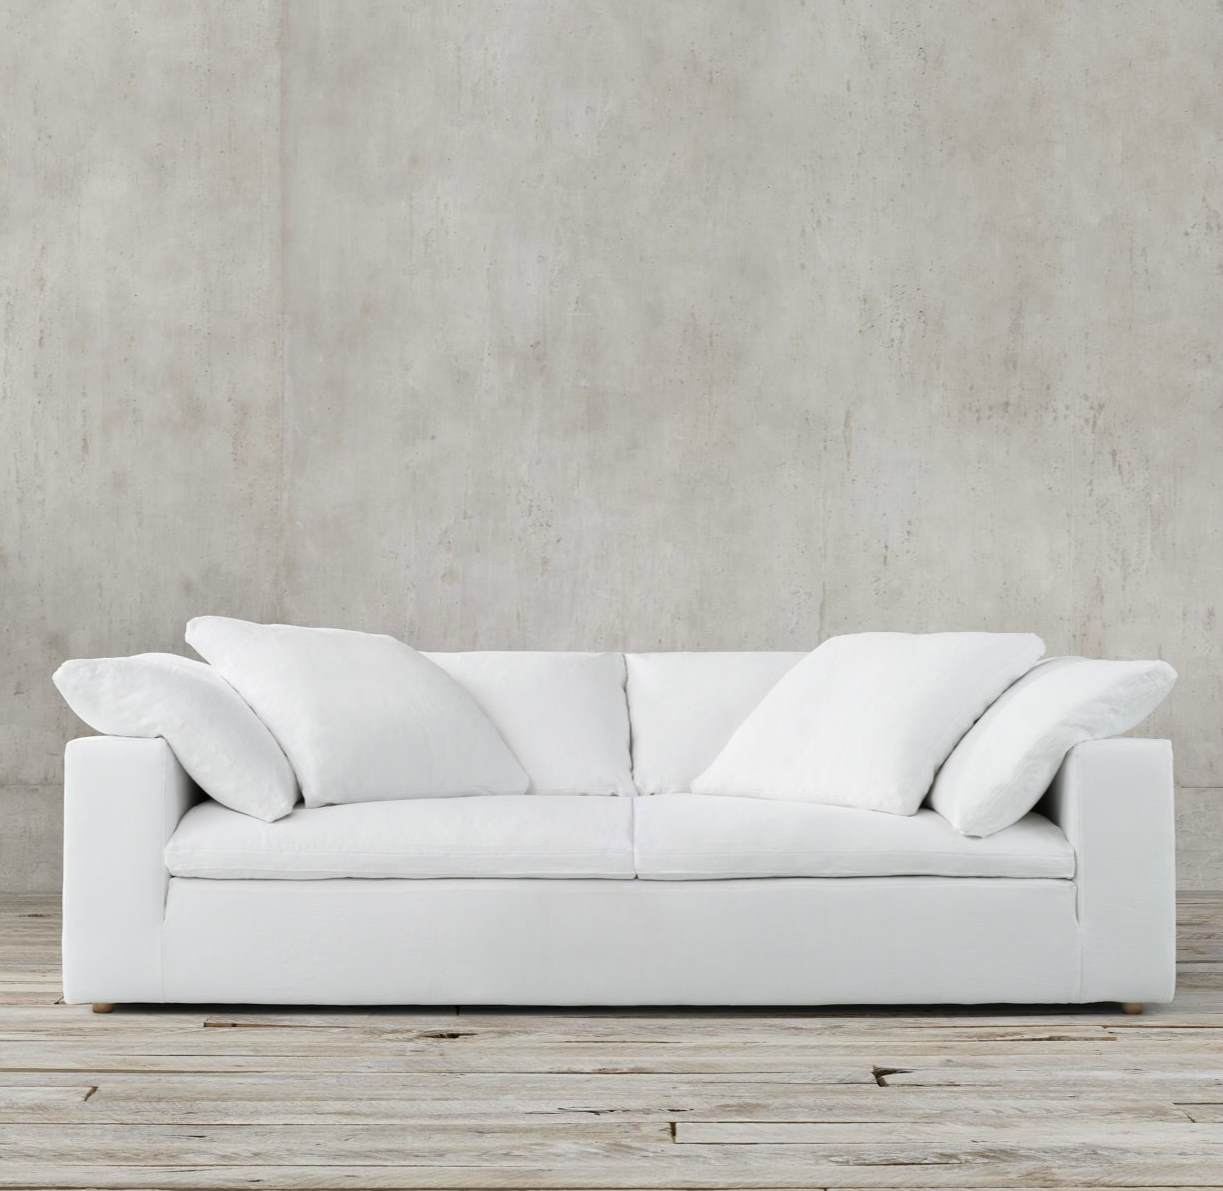 who makes restoration hardware leather sofas force 3 seater sofa vs. couch: the great seating debate